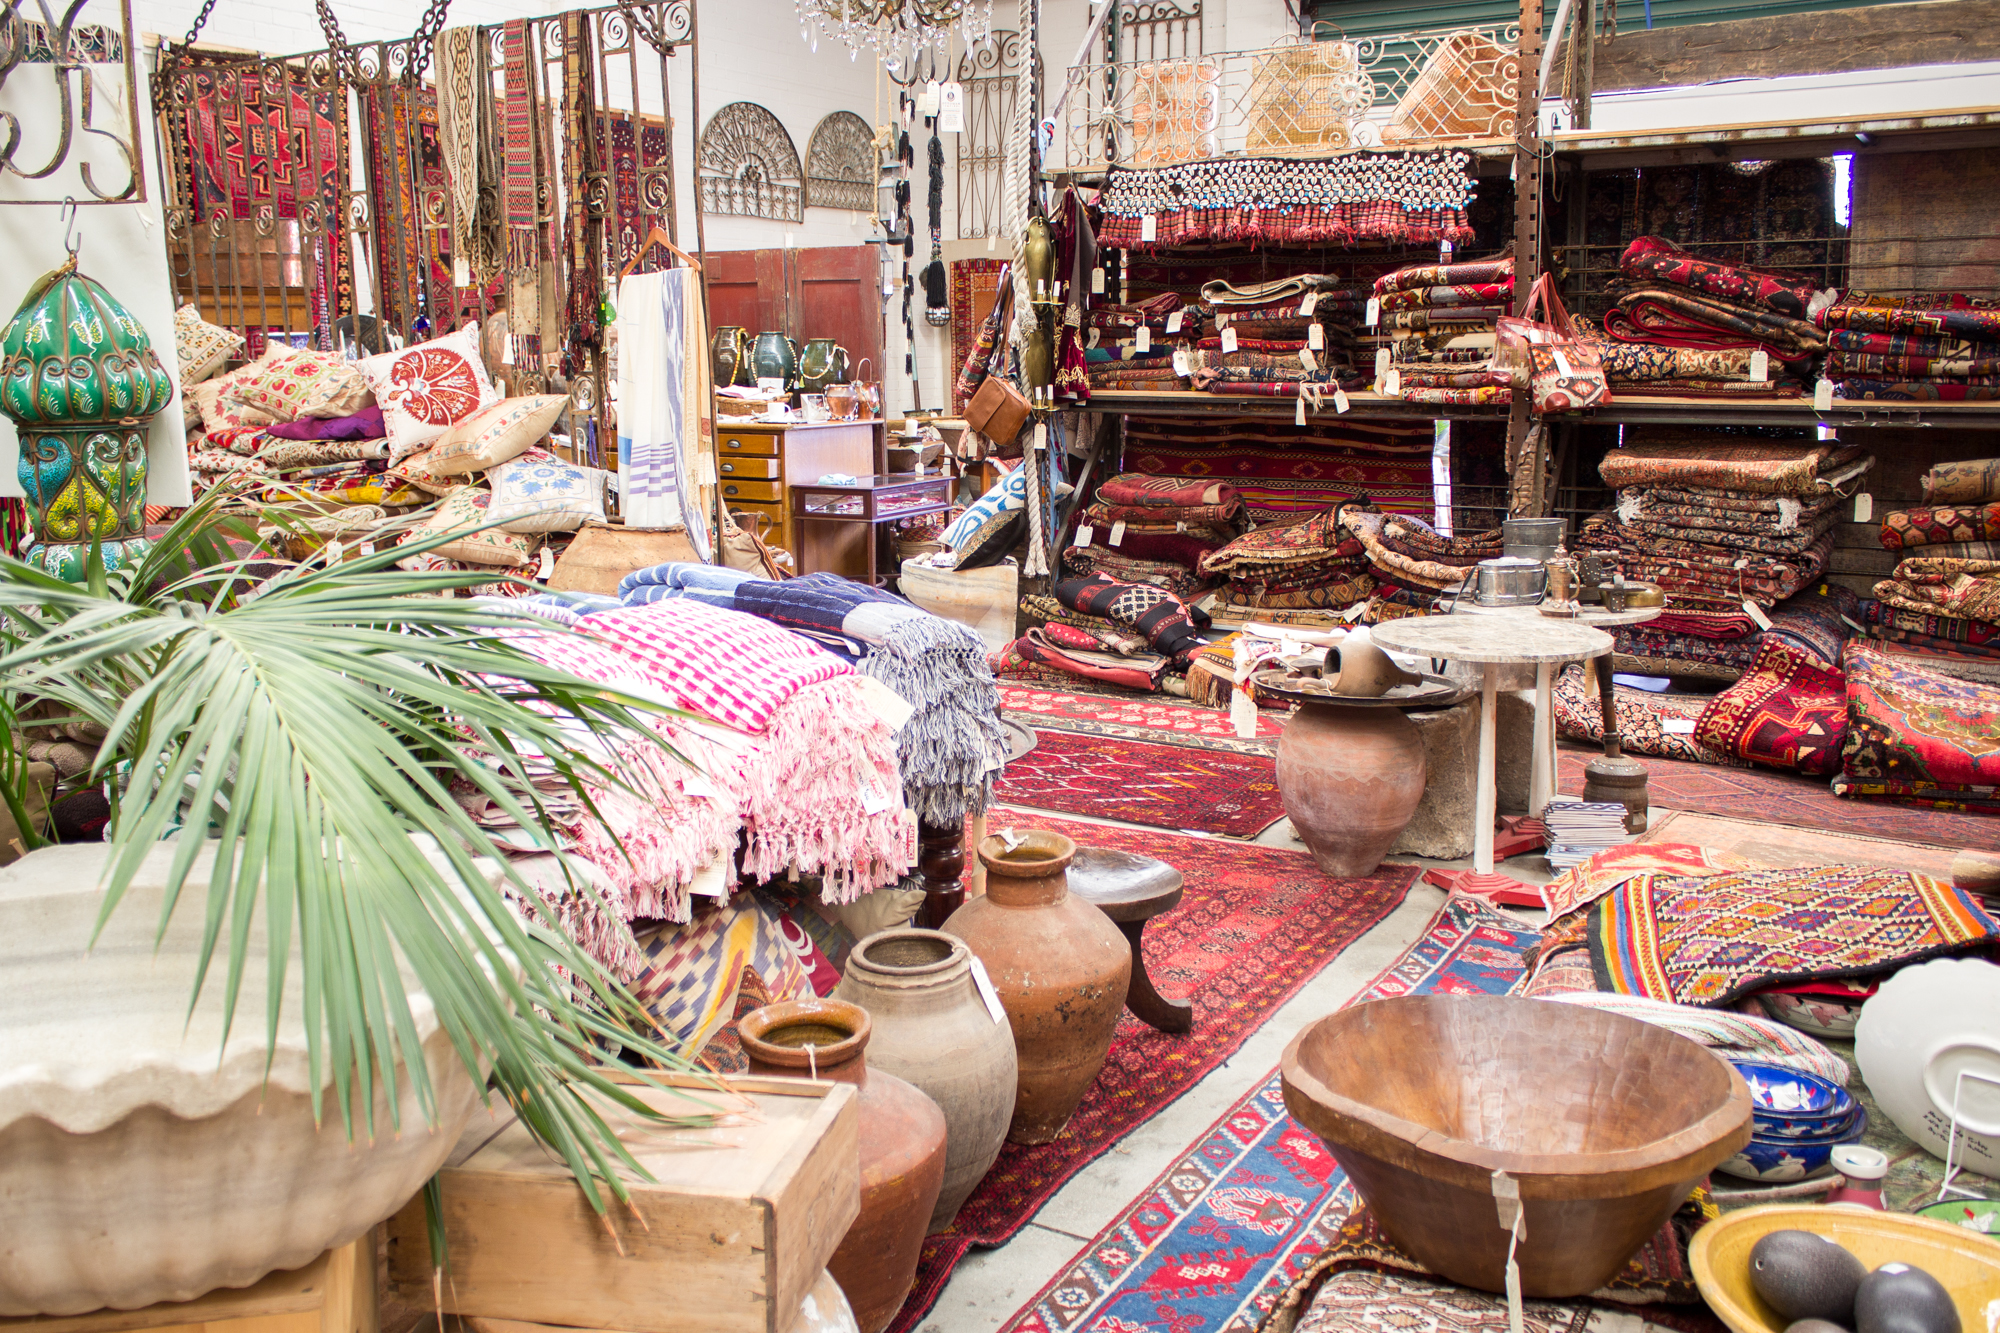 Ottoman Empire antiques, rugs shop picture